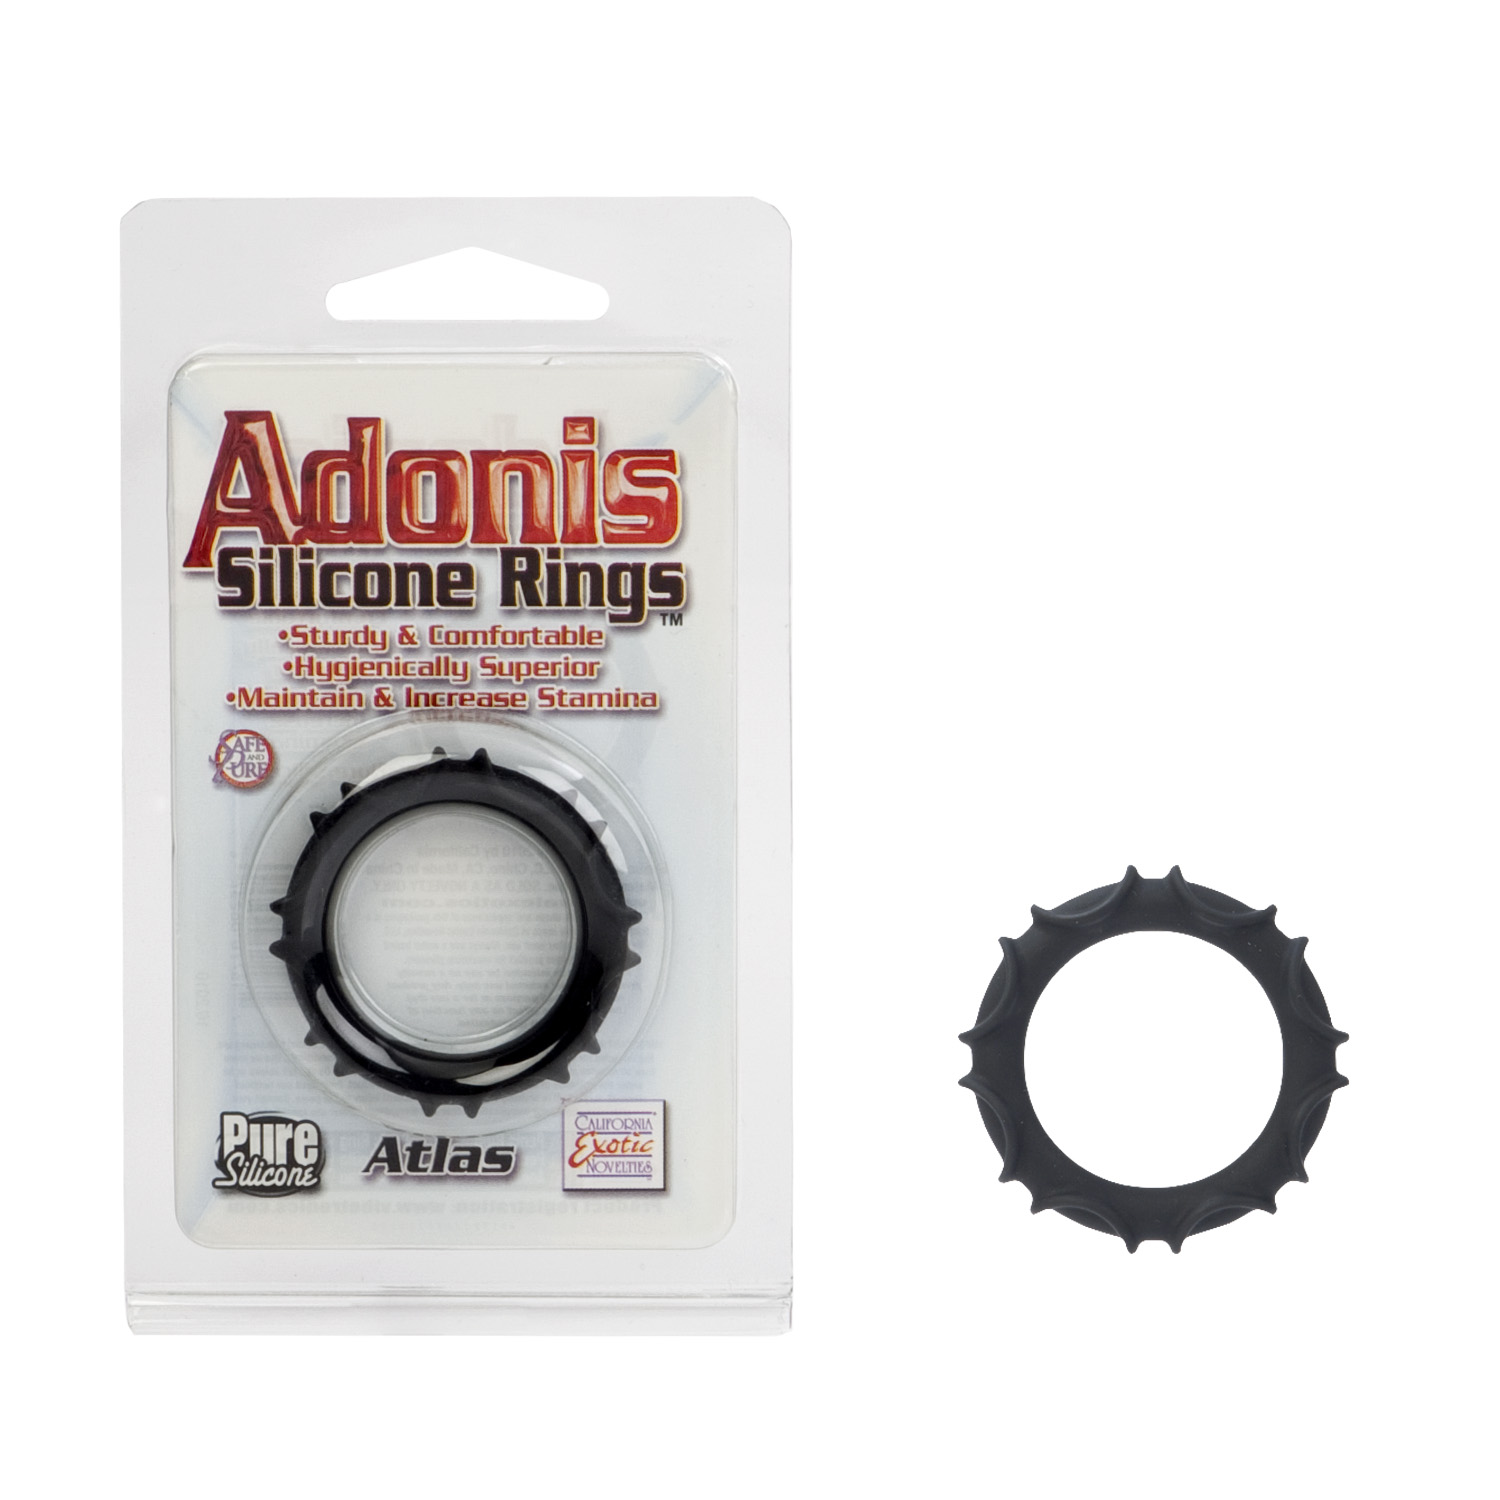 Adonis Silicone Ring Atlas Black